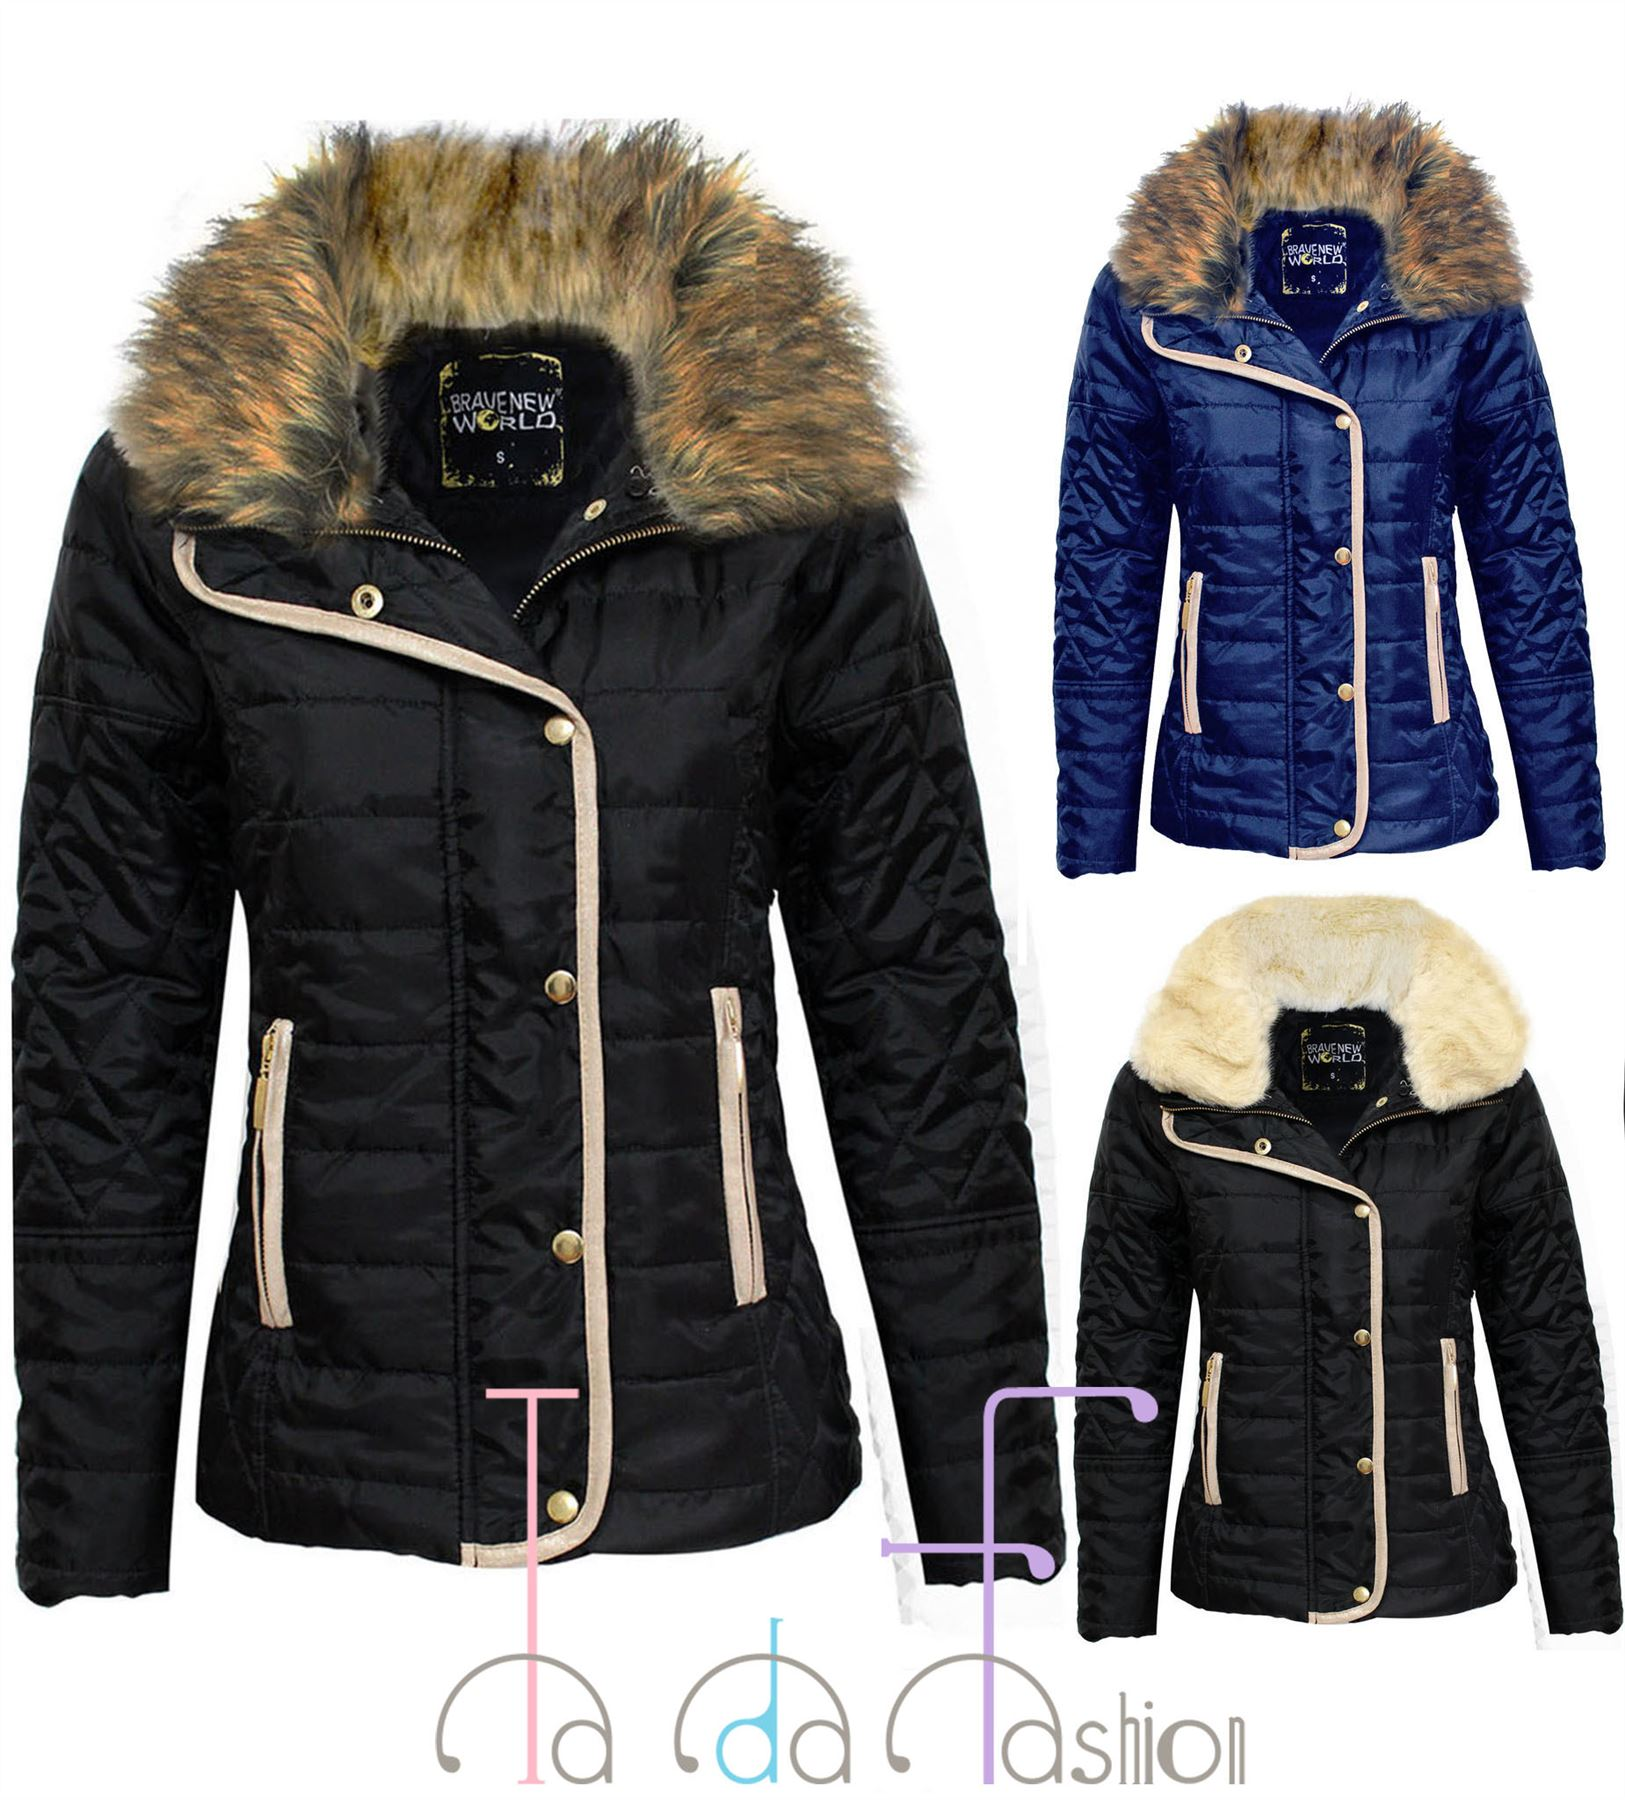 ceb4a5e3276 Details about TaDa Ladies Womens Warm Quilted Fur Collar Padded Button Zip  Jacket Size 8-14